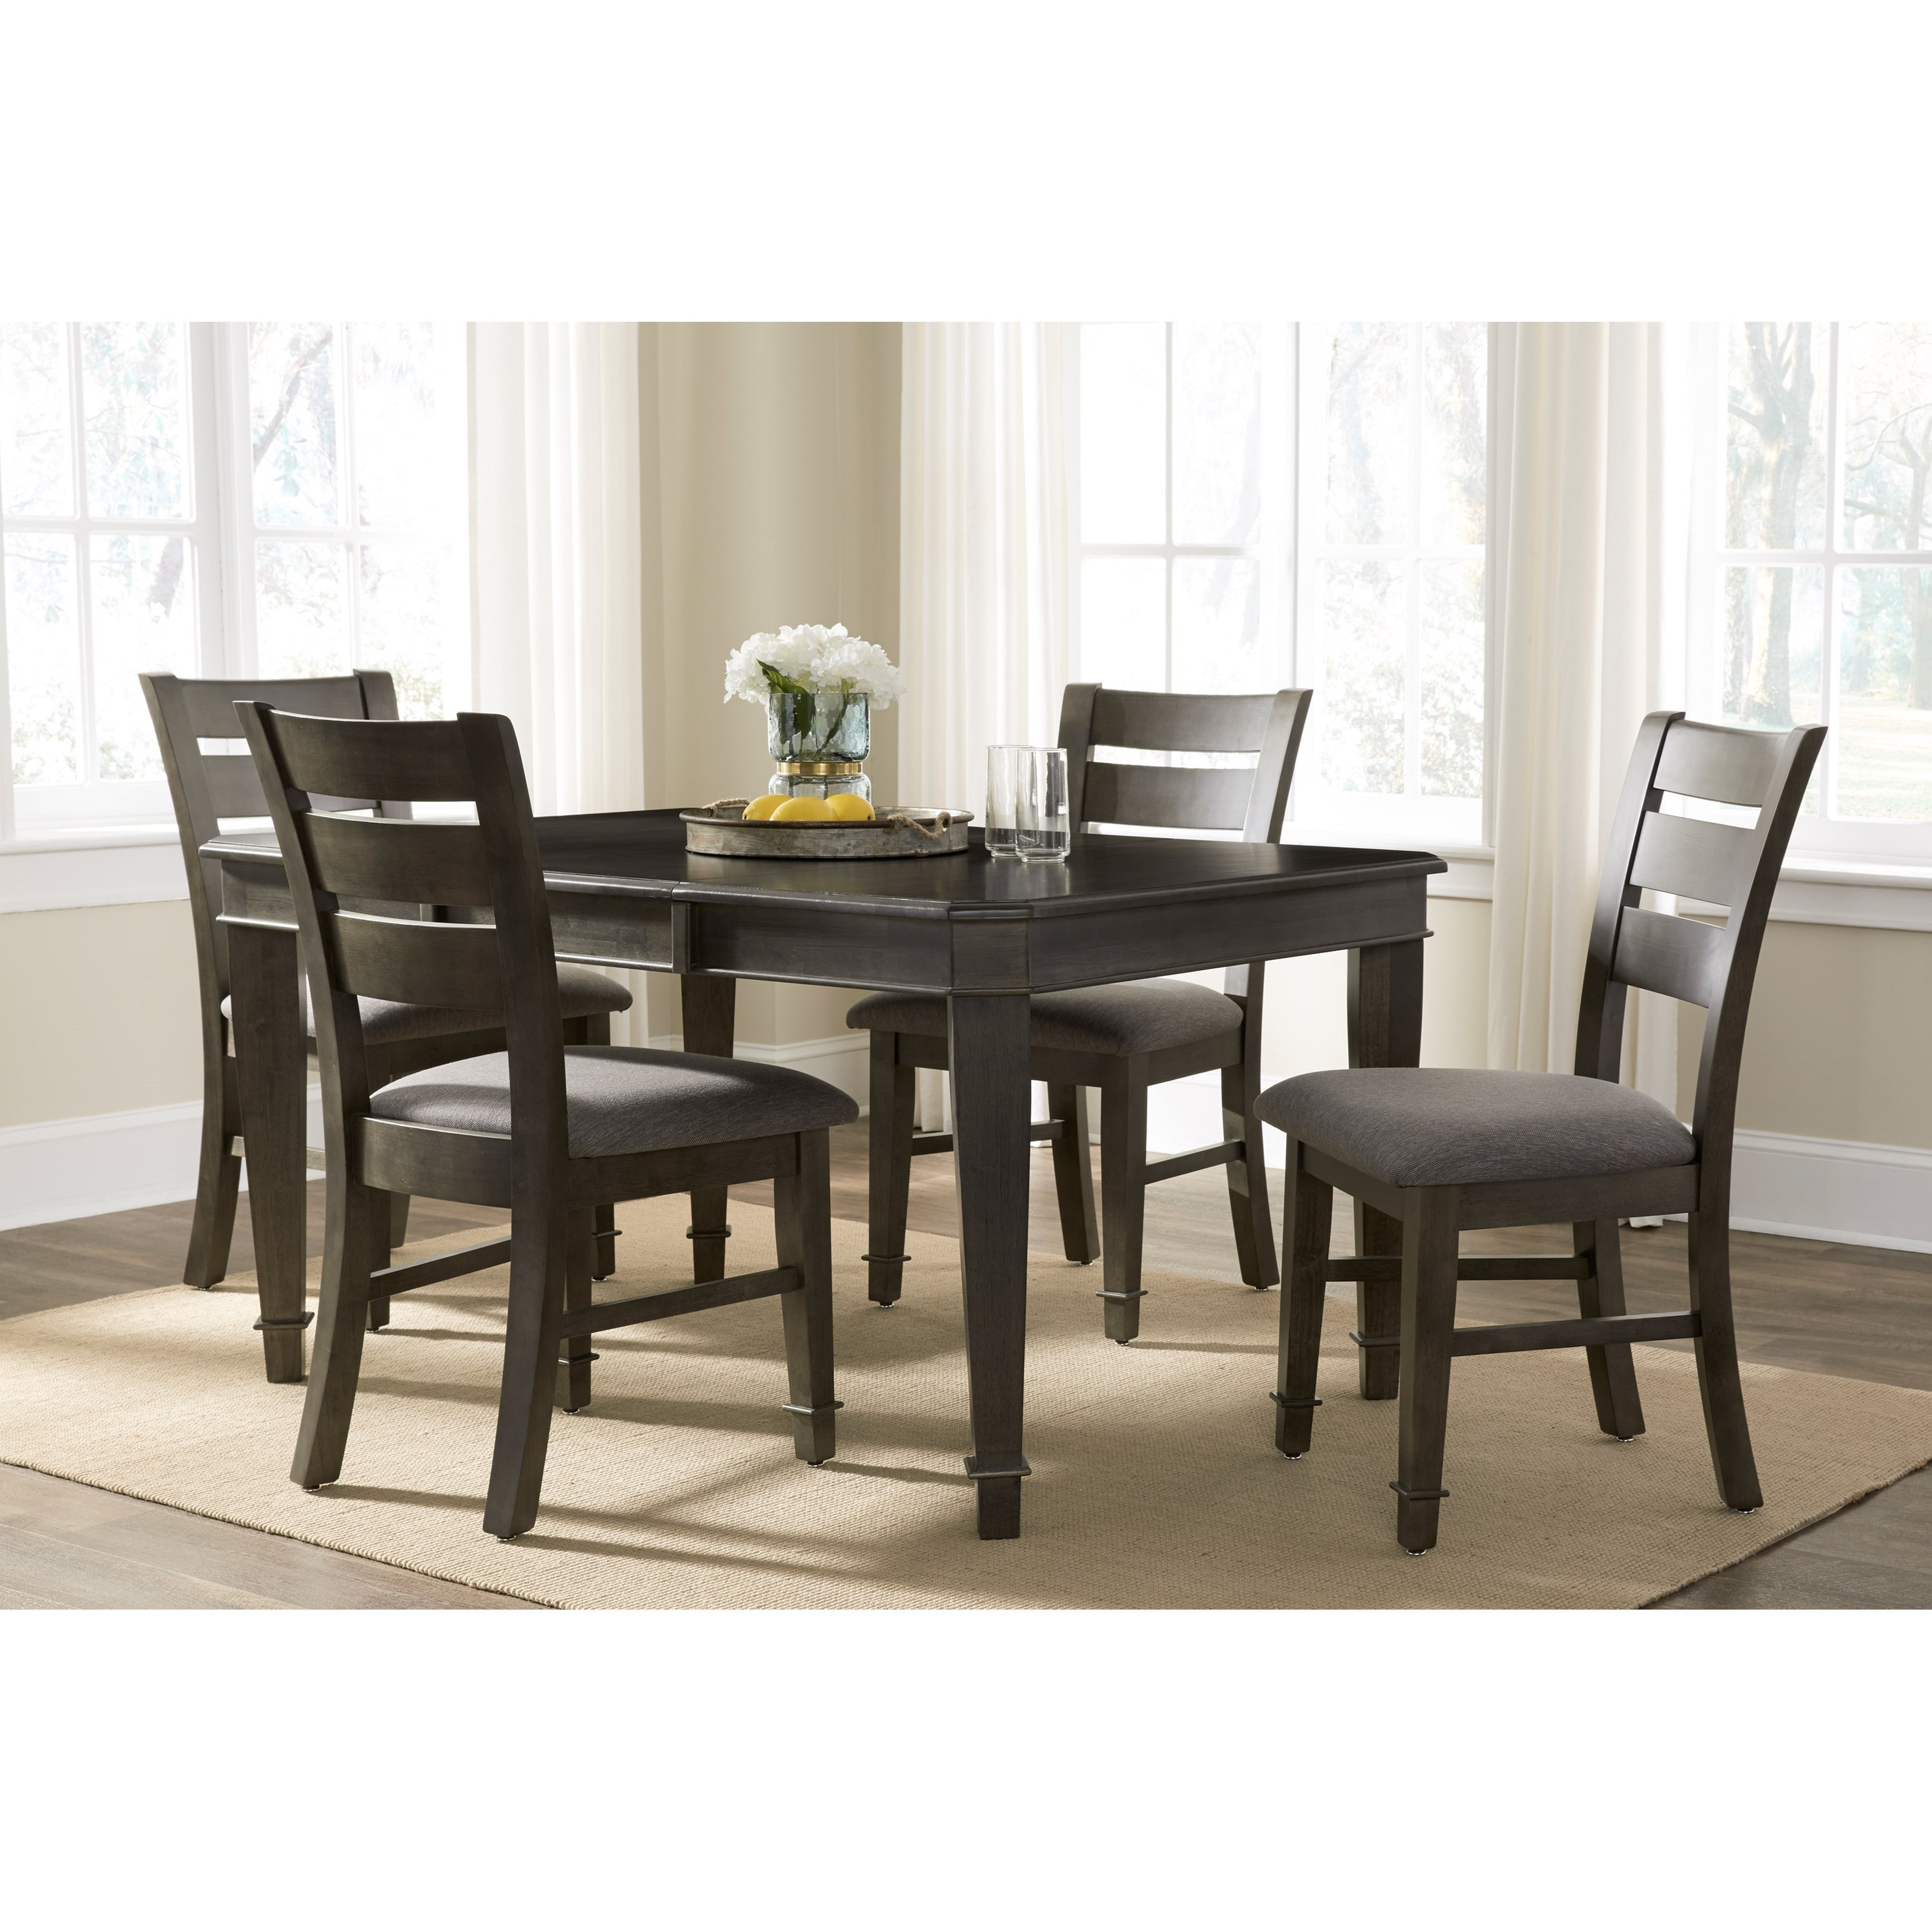 5 Piece Dining Room Sets Amazon Com: John Thomas SELECT Dining 5-Piece Table And Chair Set With